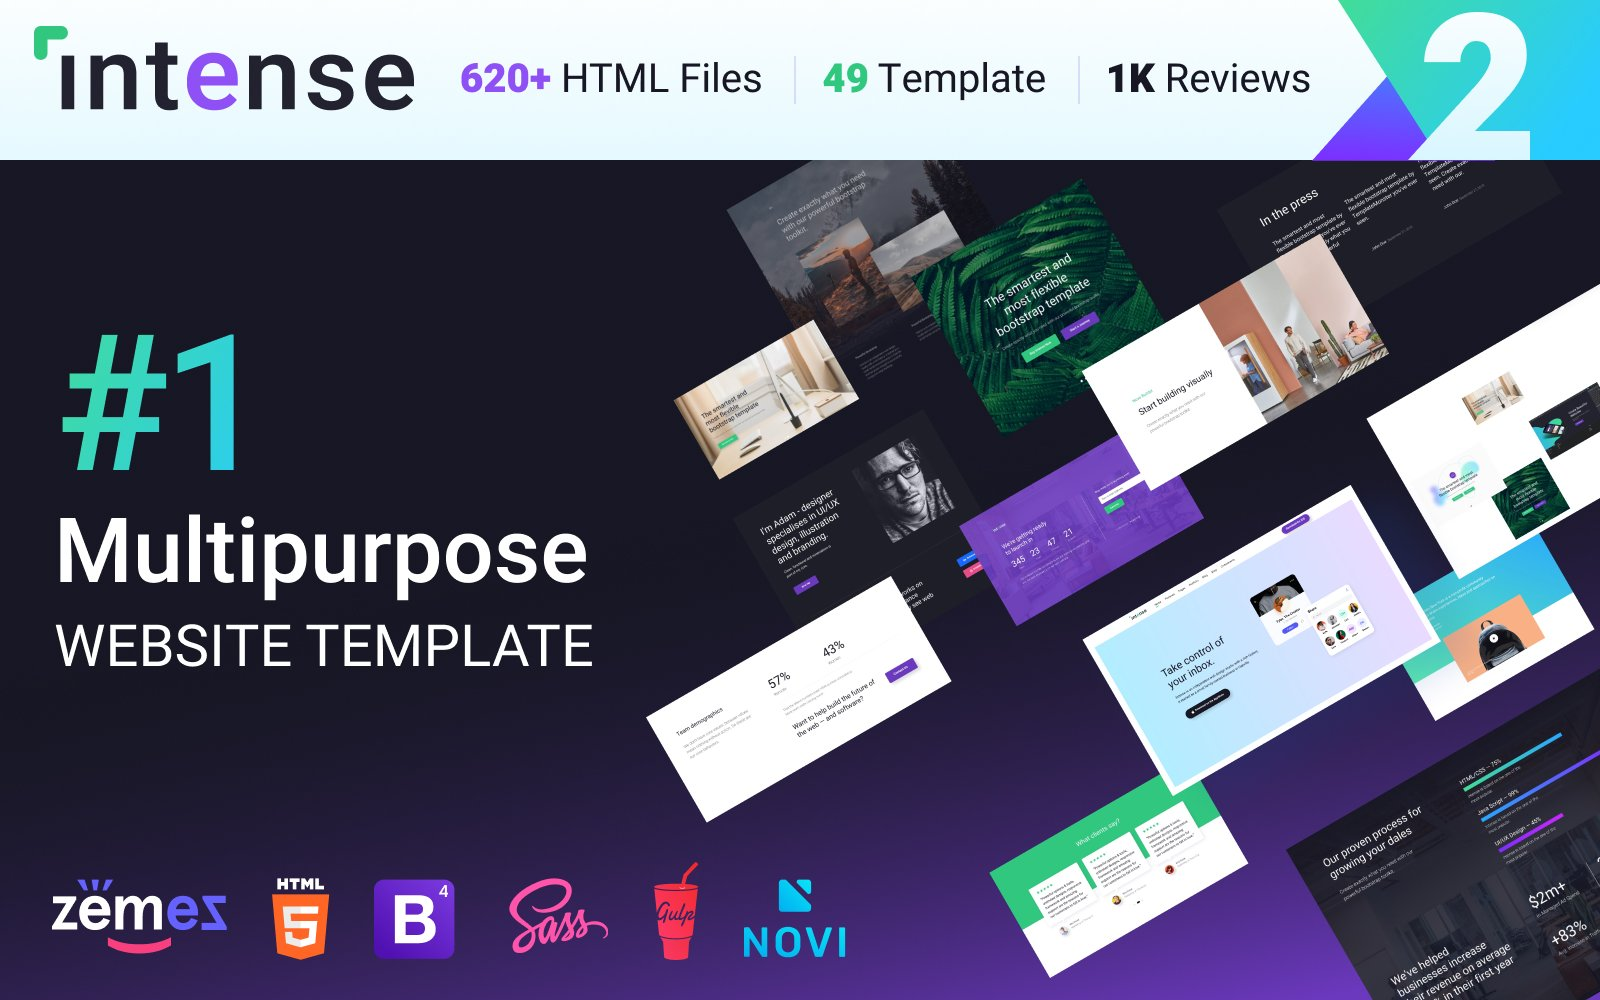 Intense multipurpose website template zoom in maxwellsz